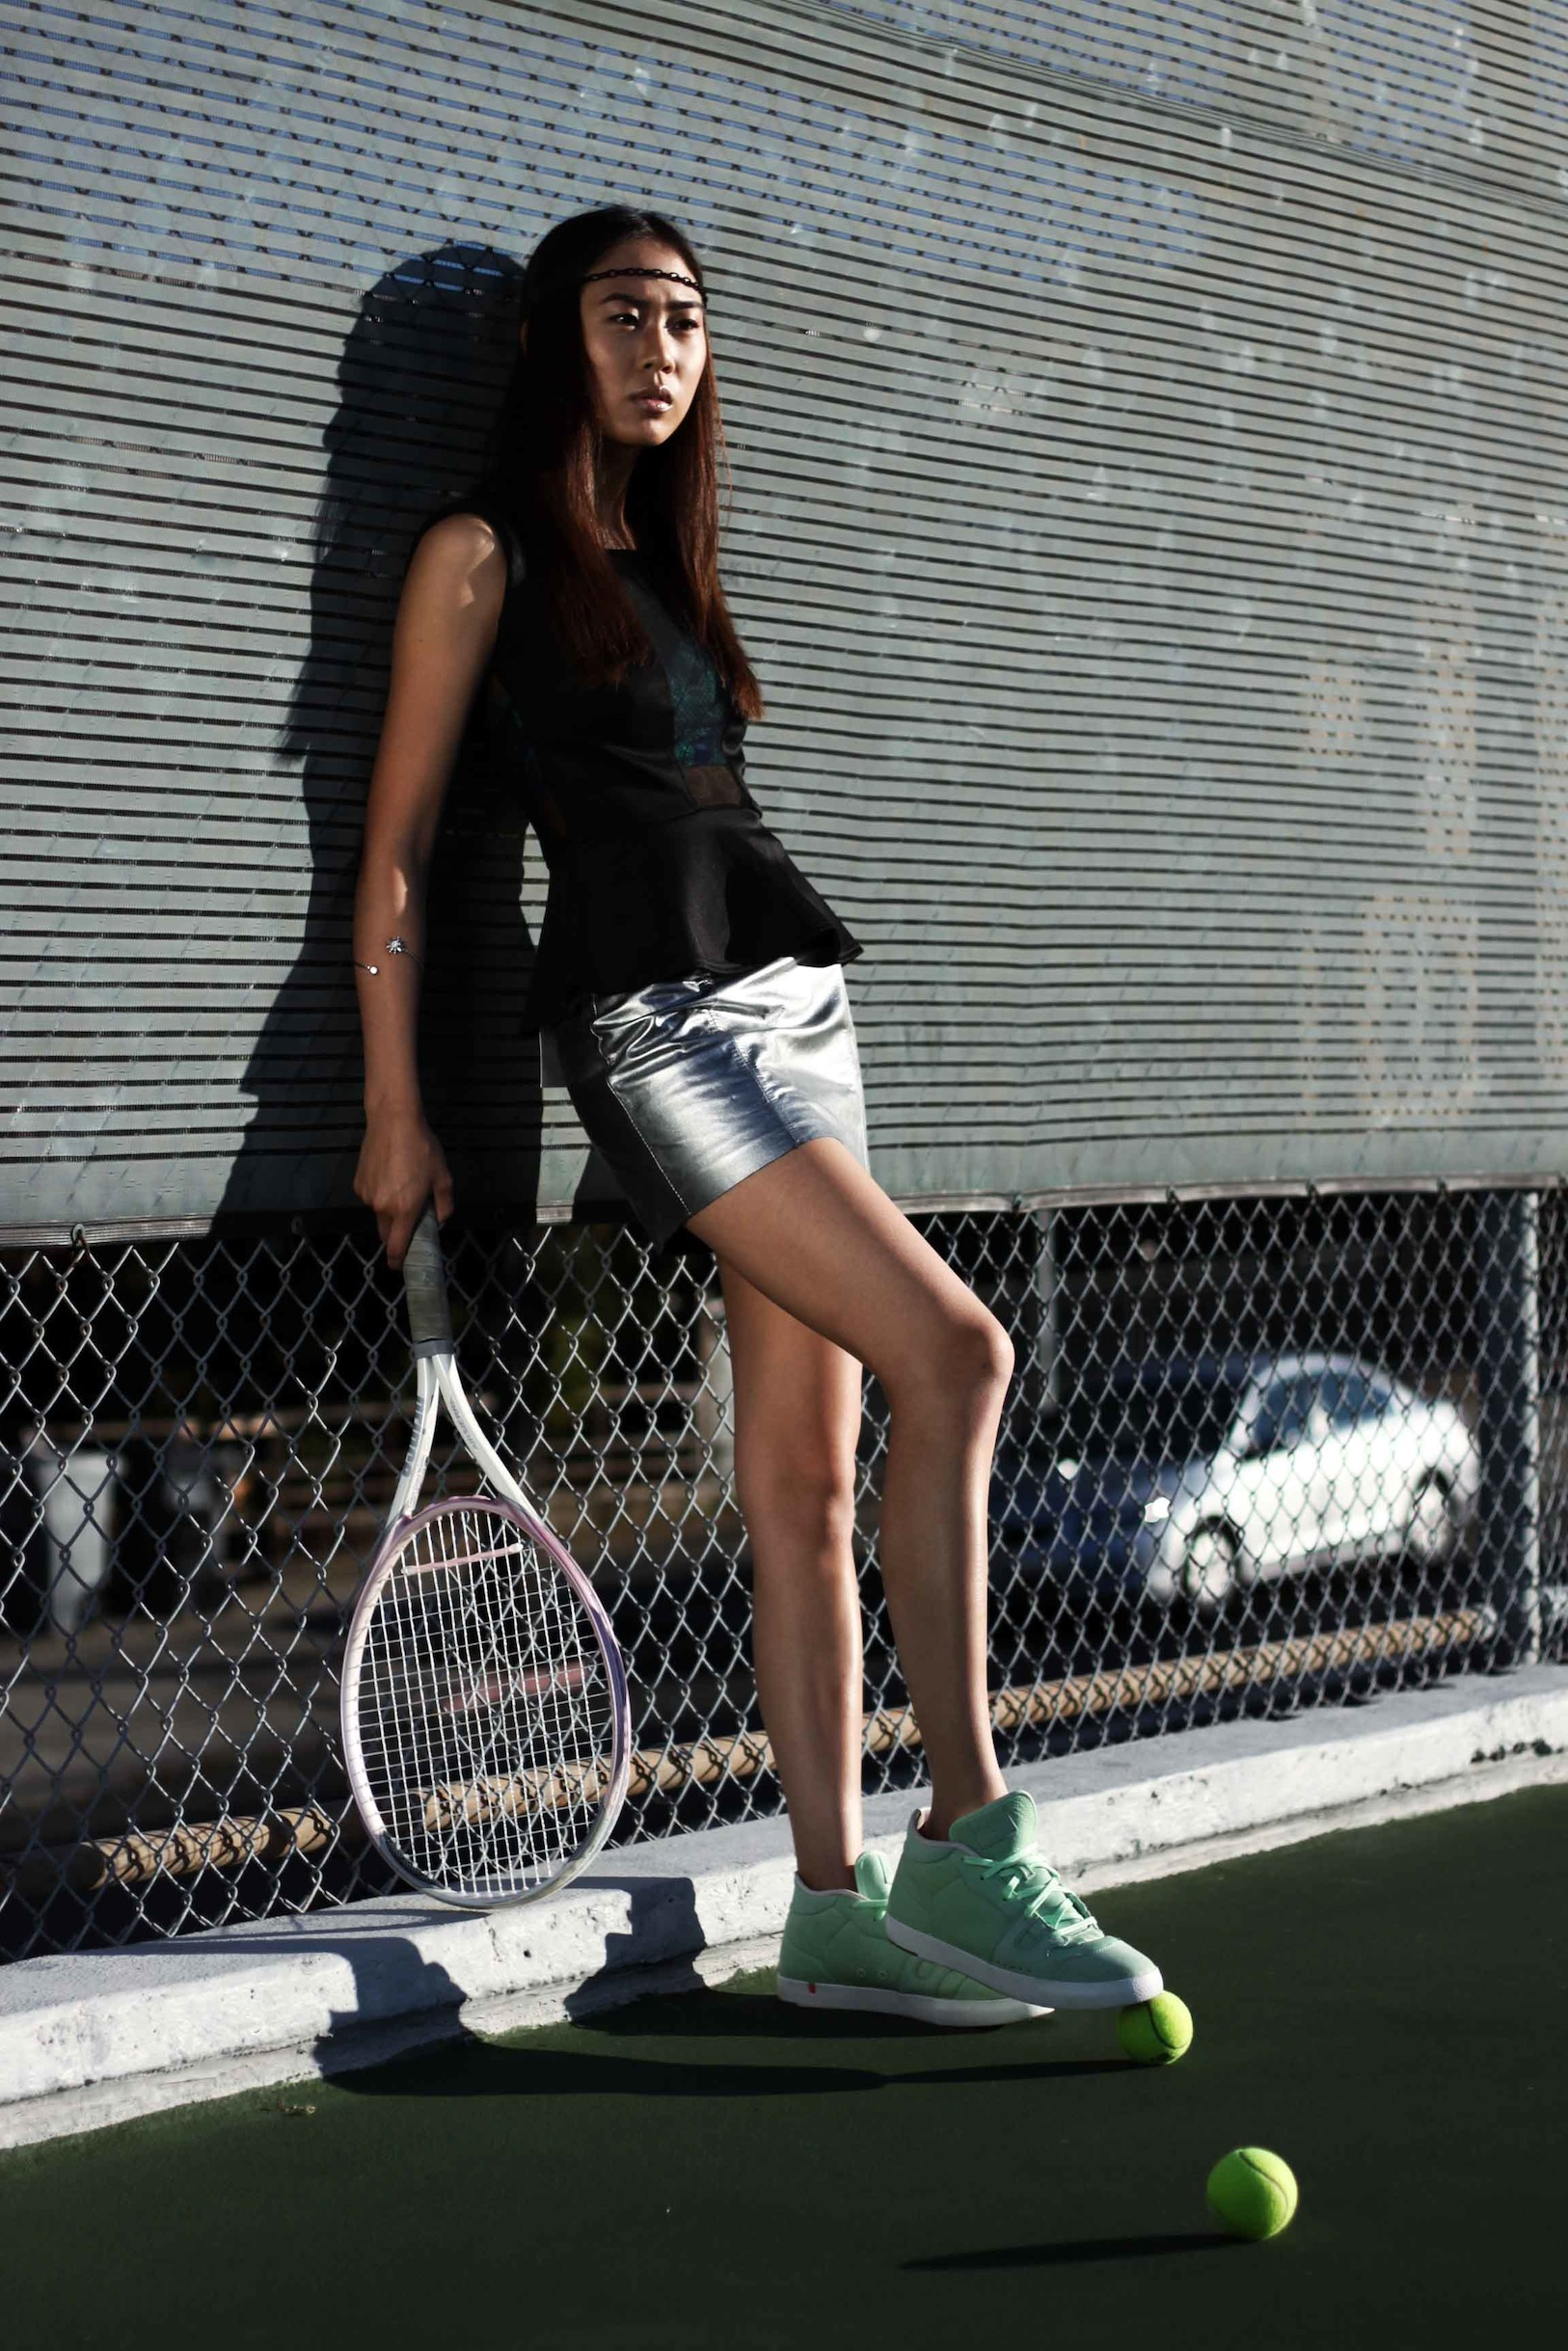 Headband, Bracelet: Sway; Bra, Shoes: Stylist's own; Top, Skirt: LF Store; Tennis racket, balls: Model's own